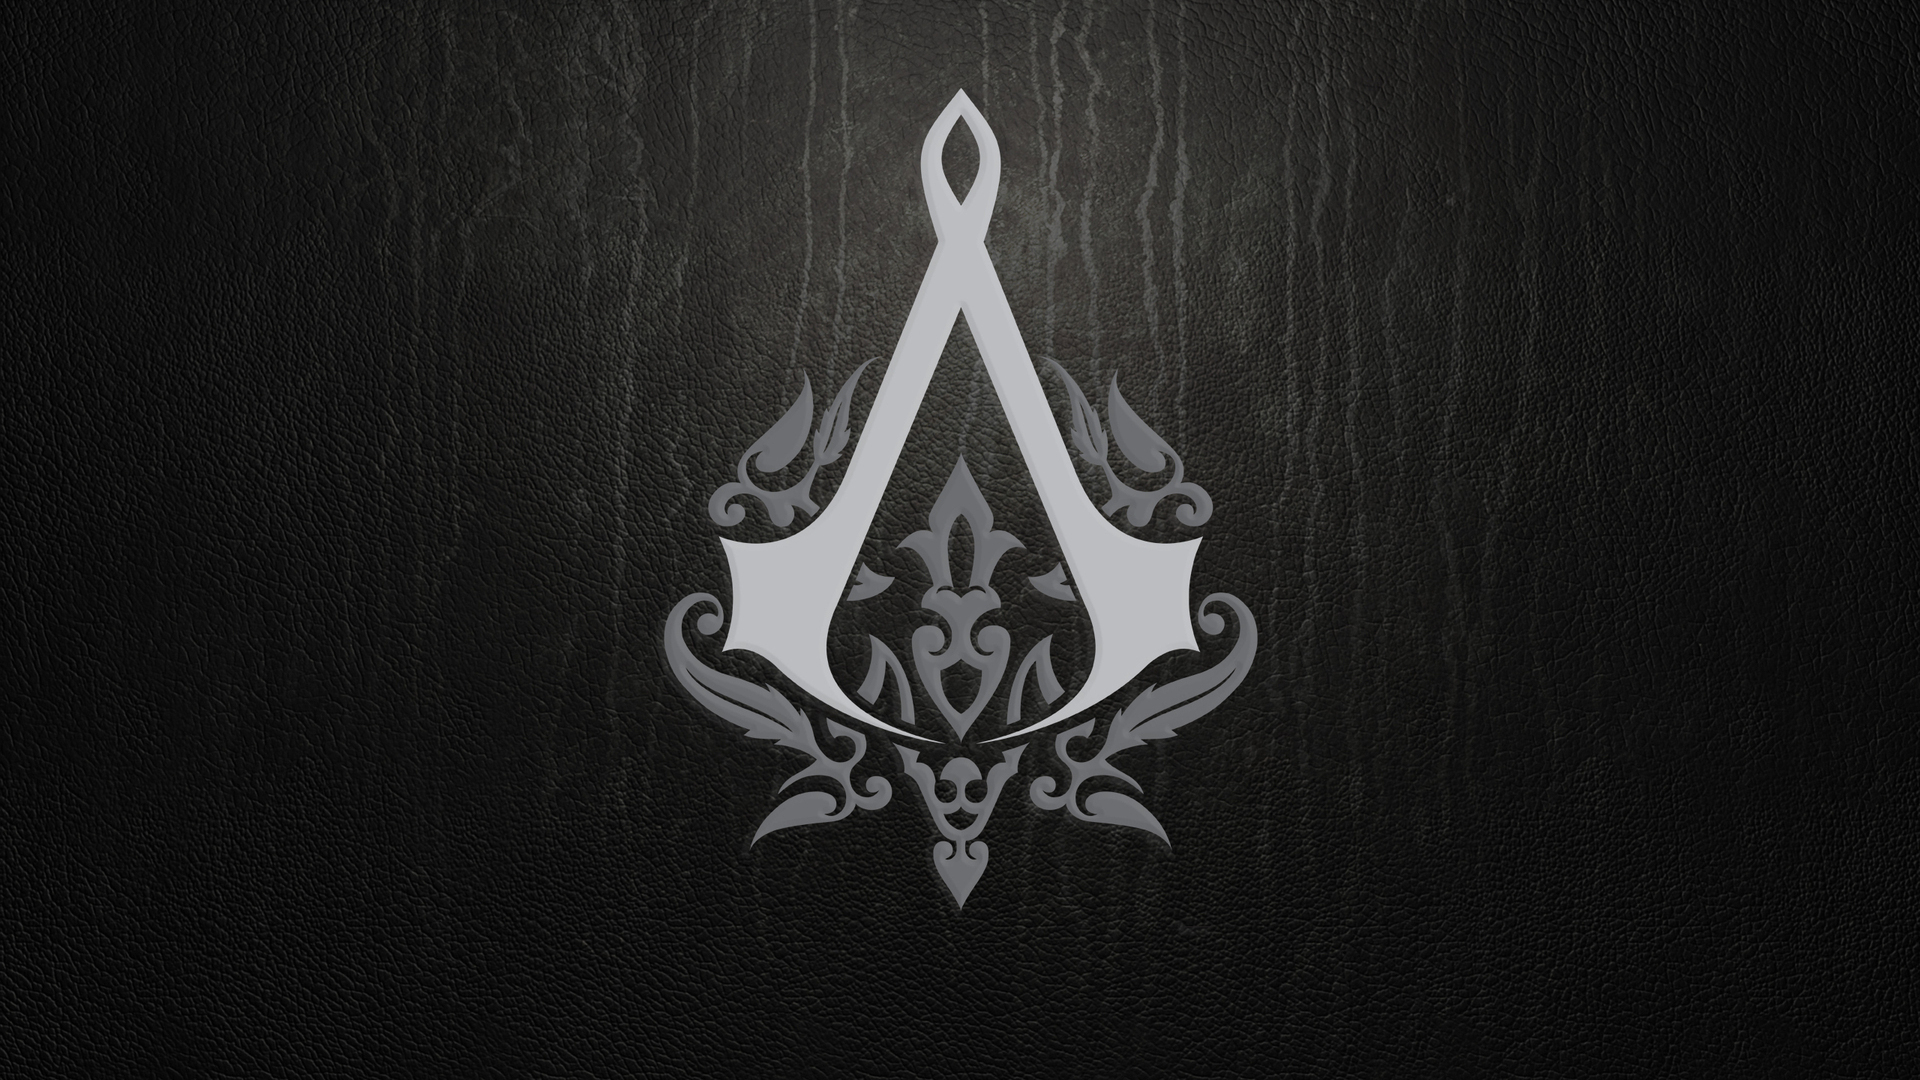 46+] Assassin\'s Creed Symbol Desktop Wallpaper on.